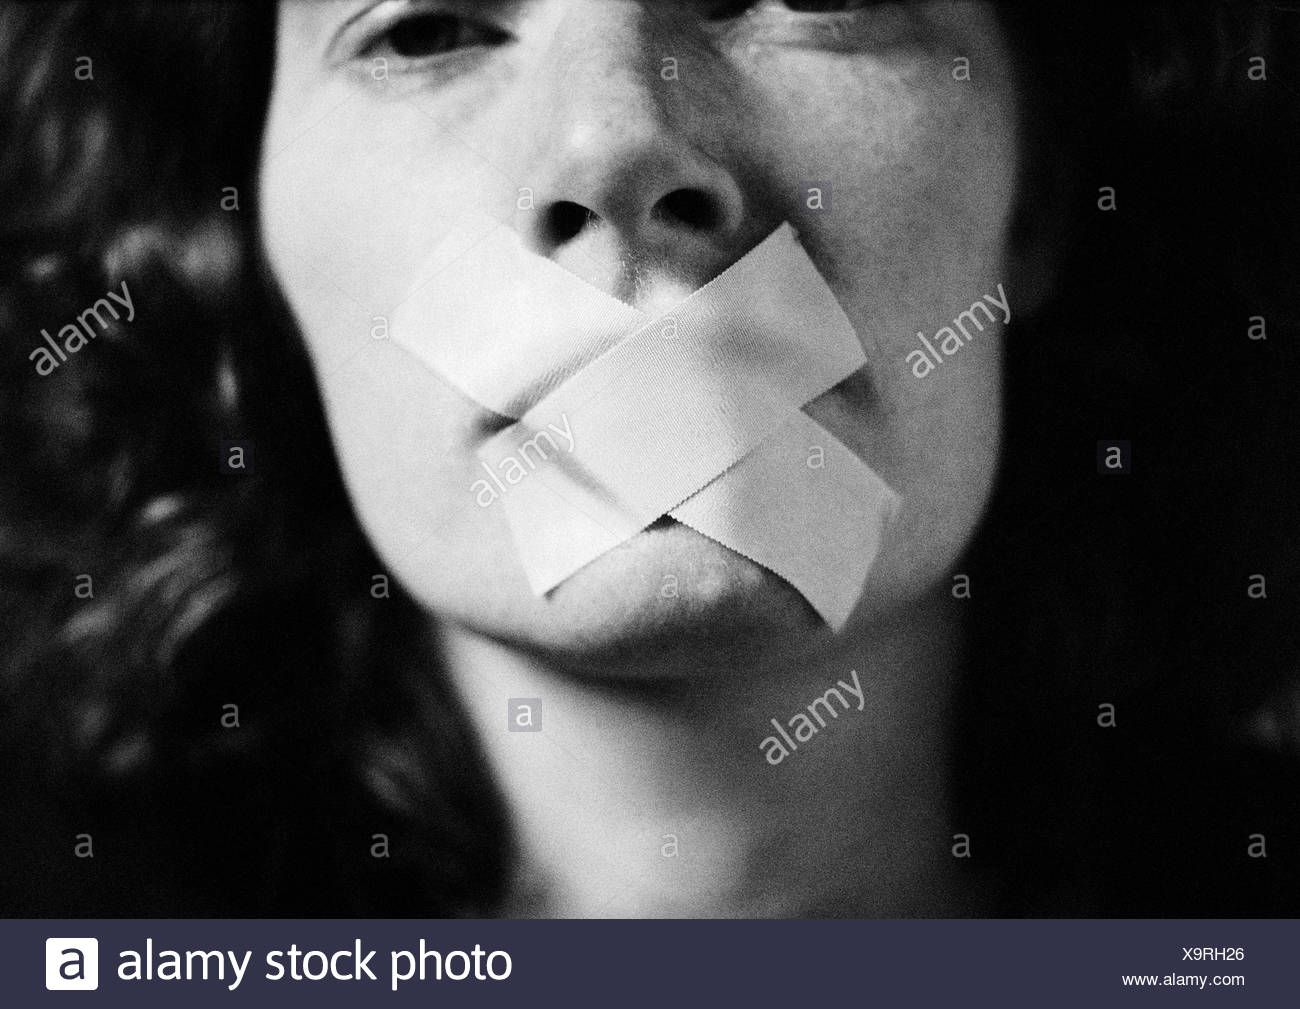 Woman with tape over mouth, close-up, blurred - Stock Image